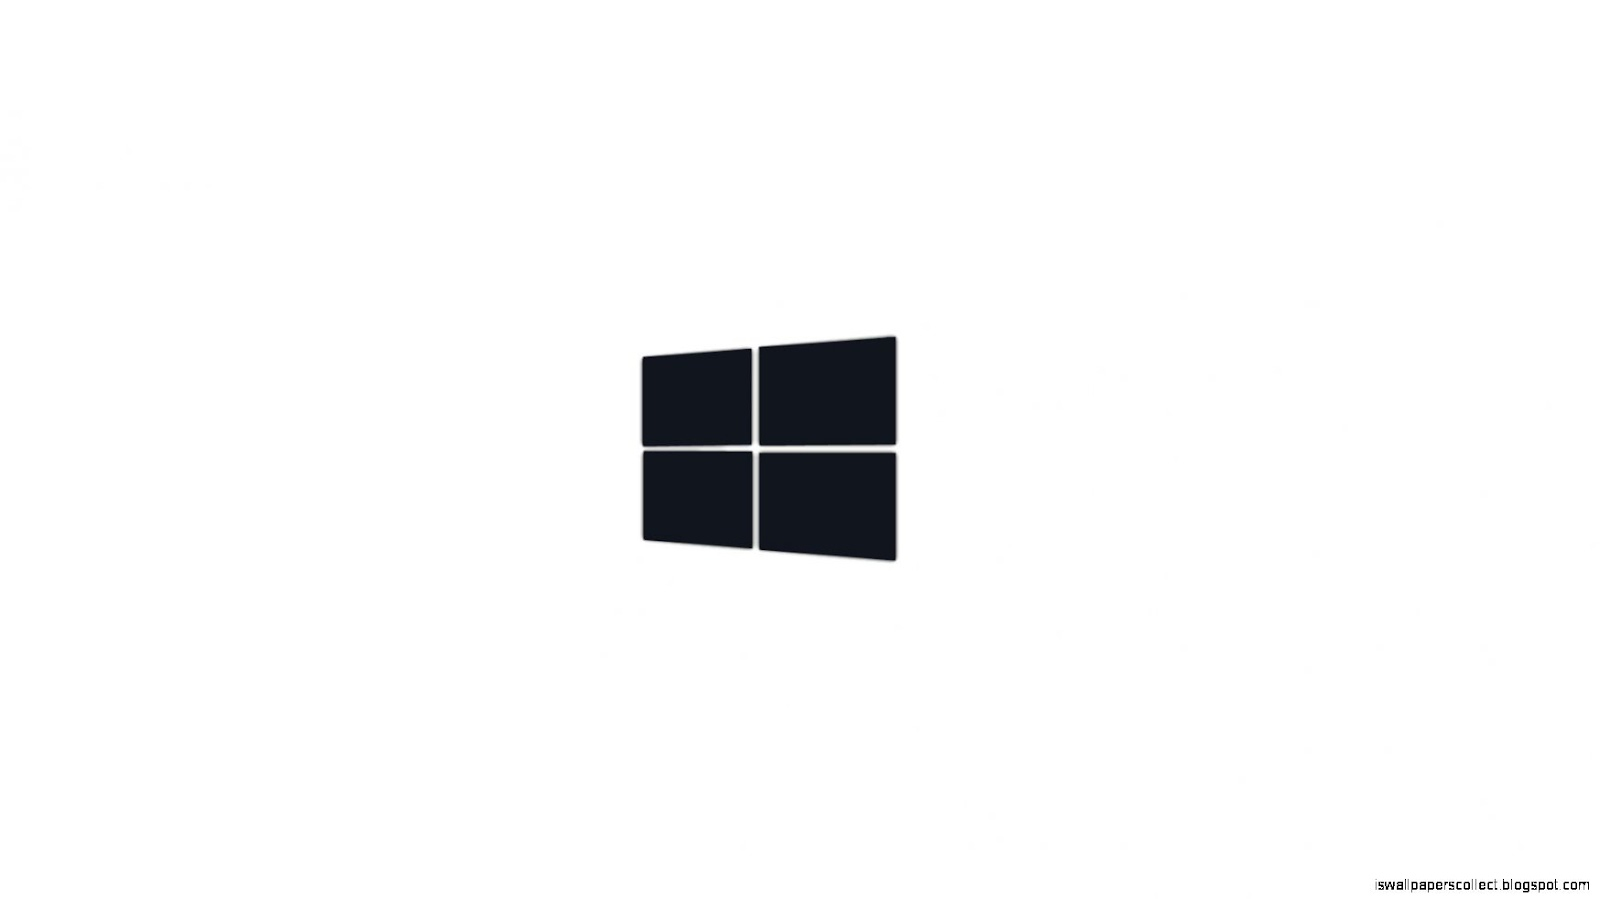 windows logo black white wallpapers collection